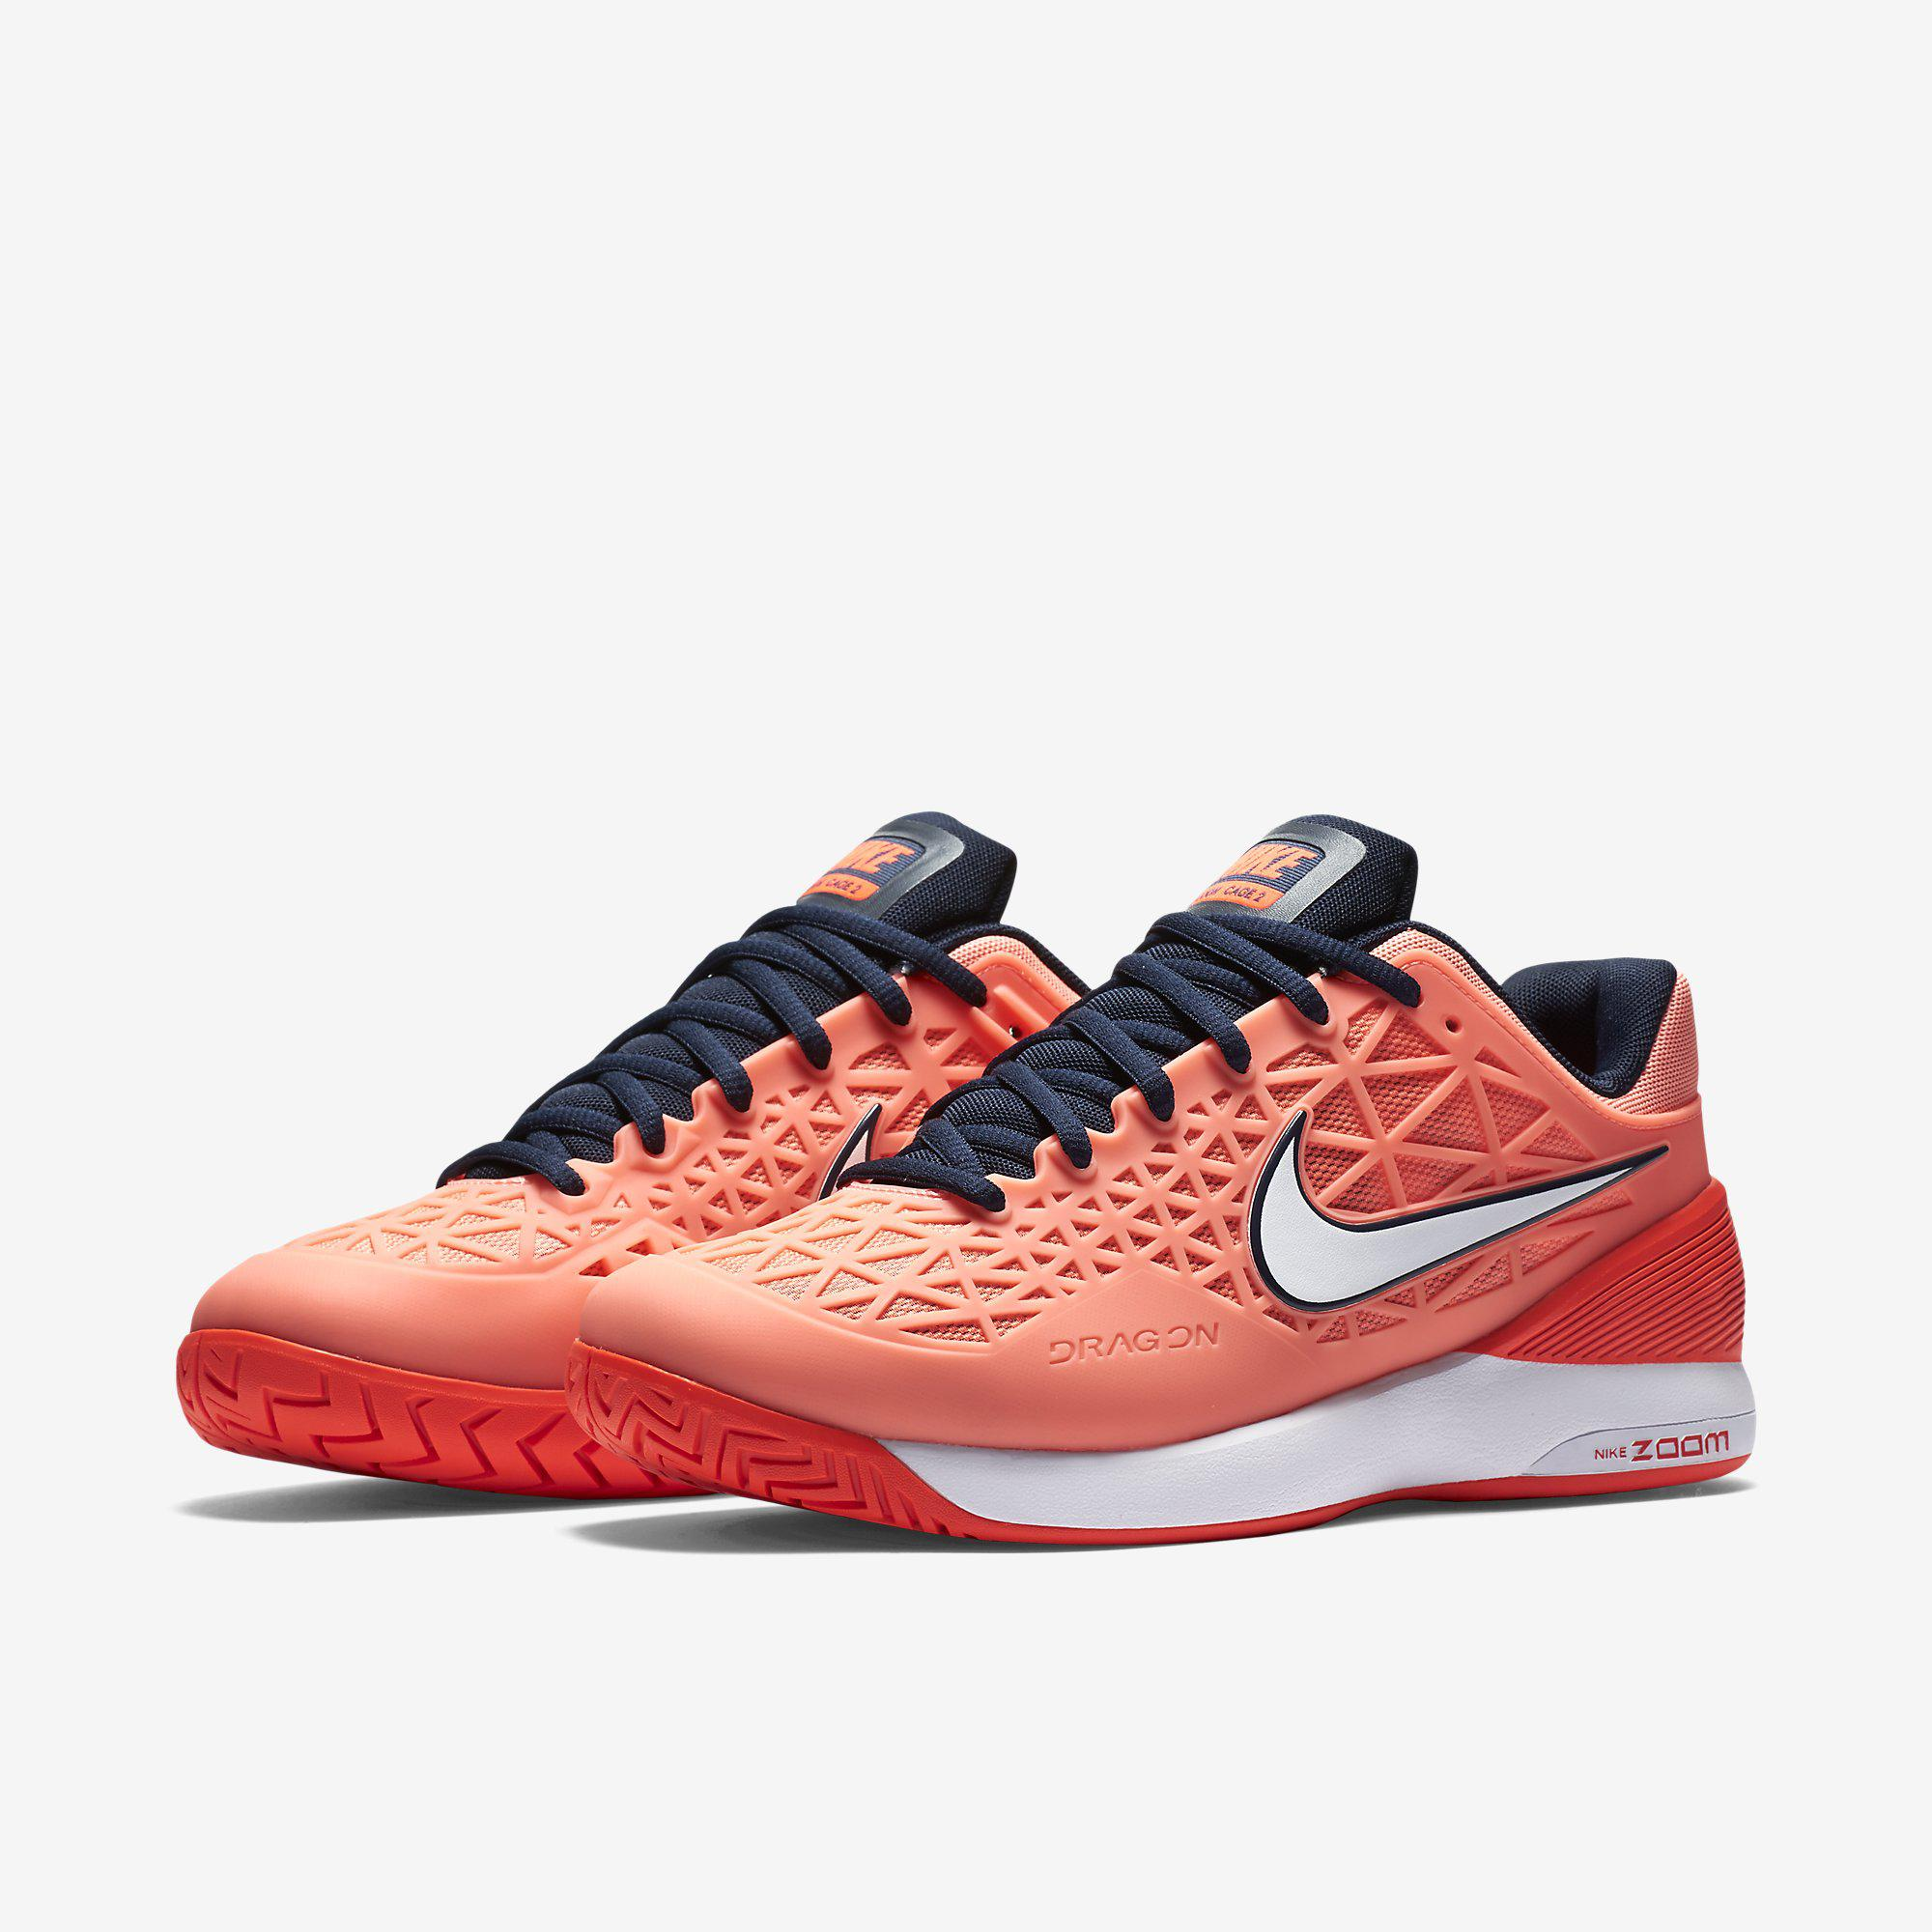 Nike Womens Zoom Cage 2 Tennis Shoes OrangeCoral